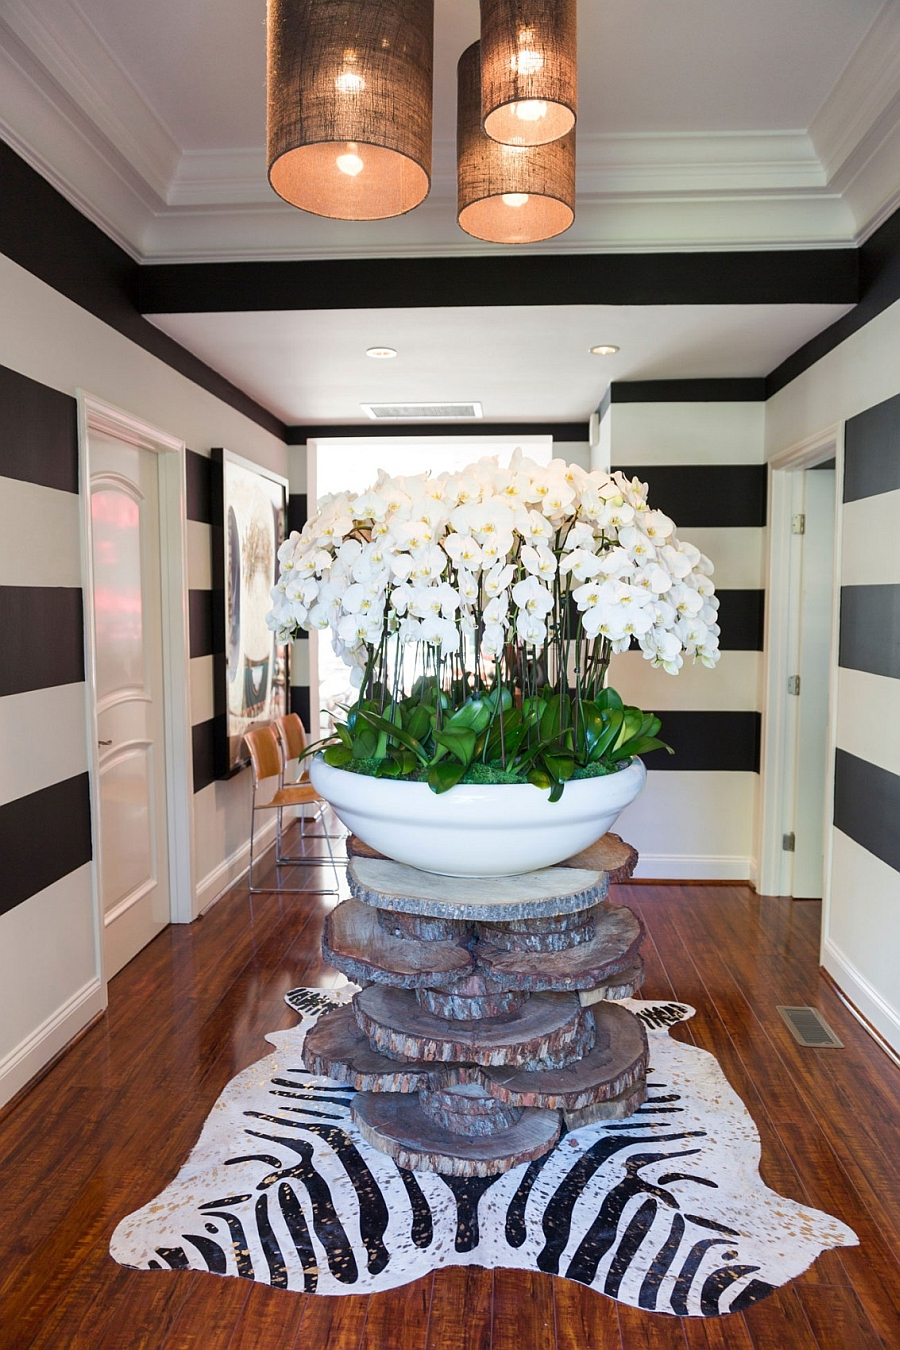 Vintage entrance with a giant vase and black and white stripes